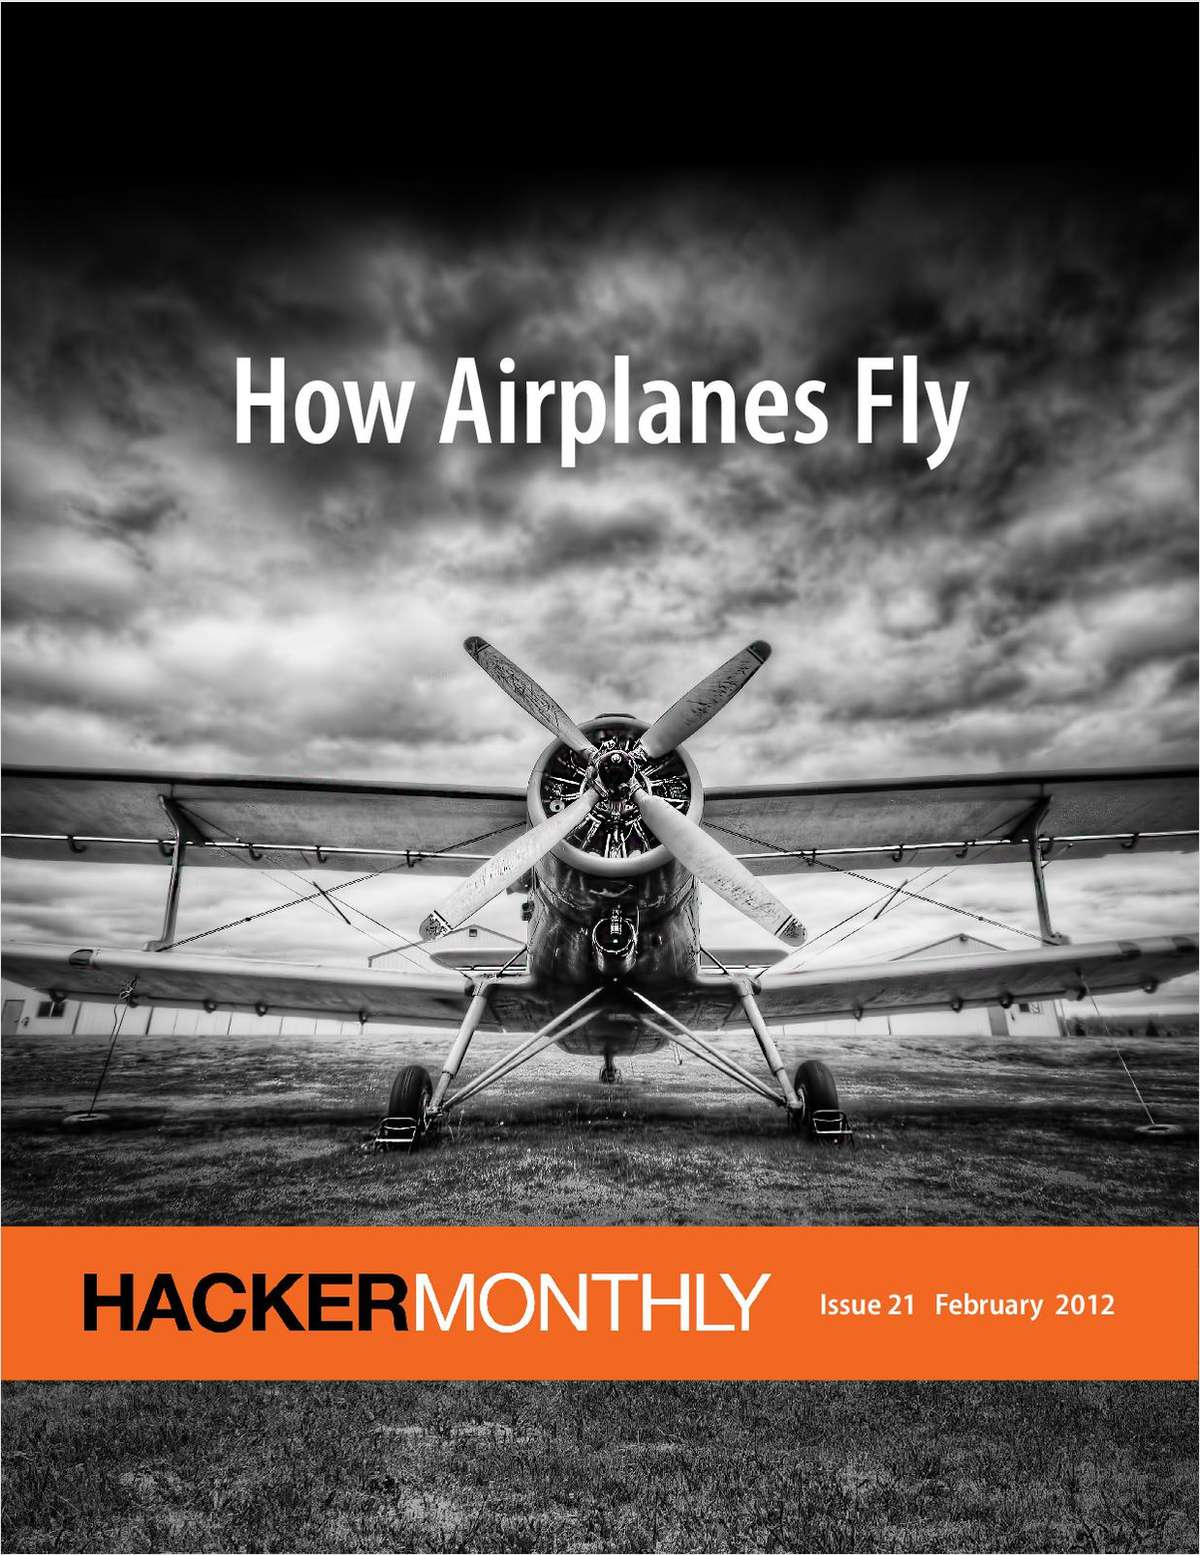 Hacker Monthly -- How Airplanes Fly